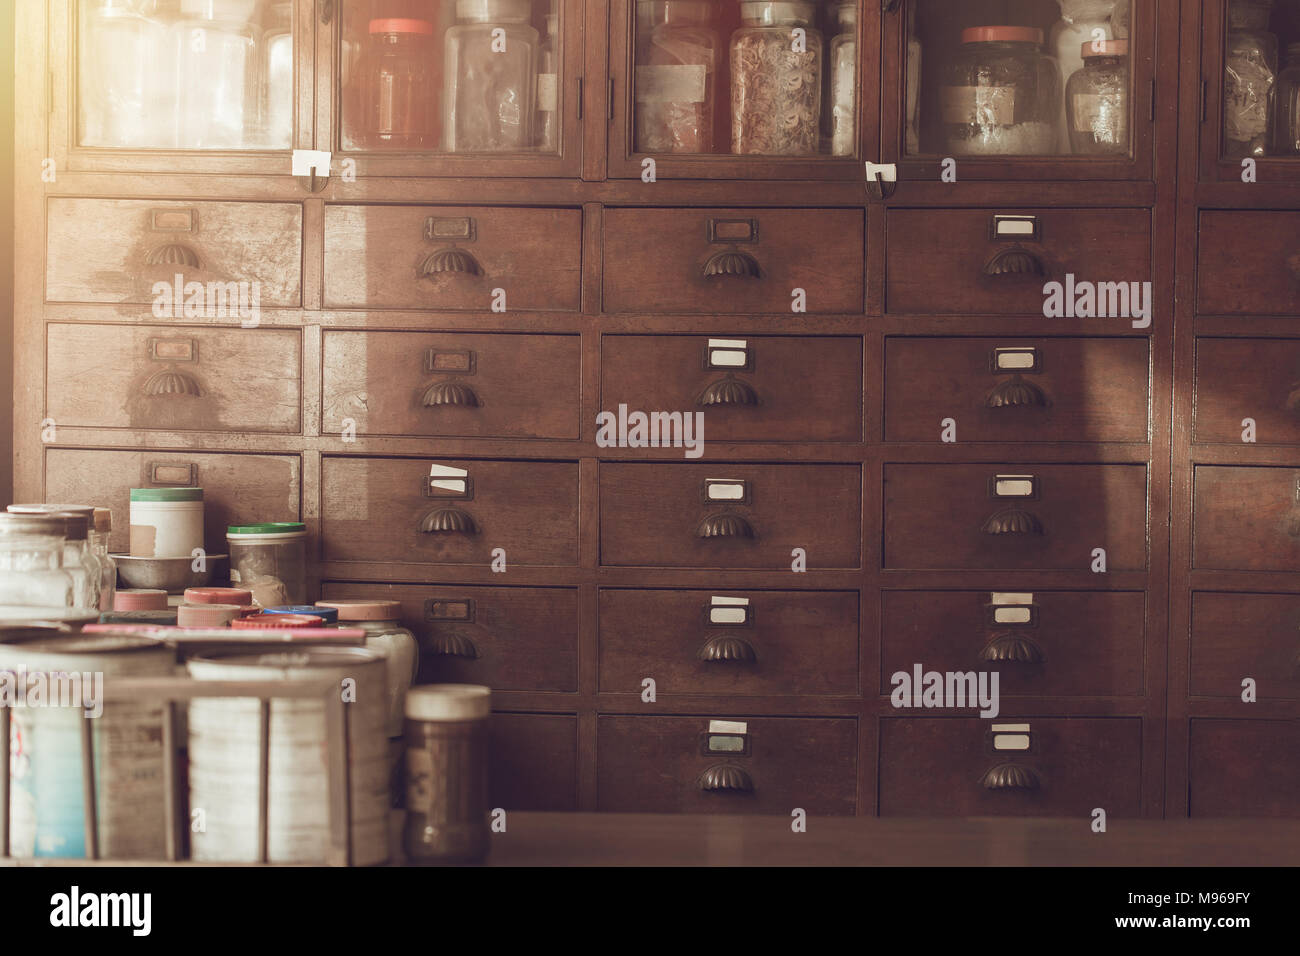 Herbal Cabinets High Resolution Stock Photography And Images Alamy